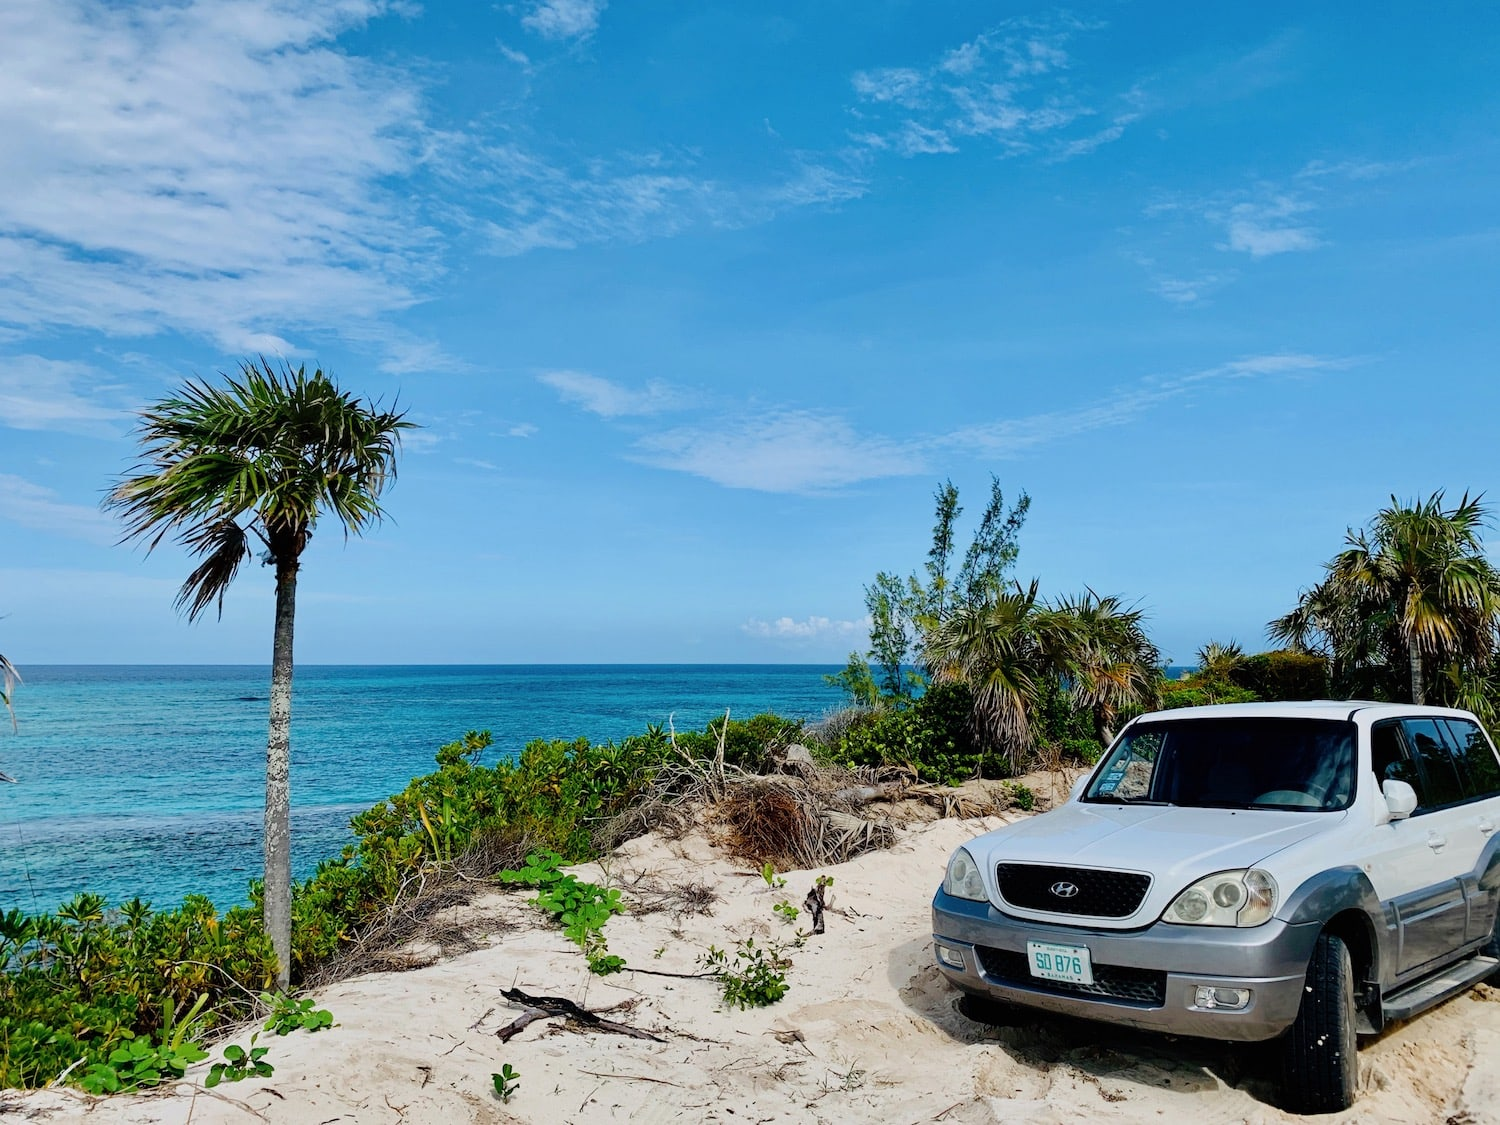 eleuthera travel guide - Renting a car in Eleuthera